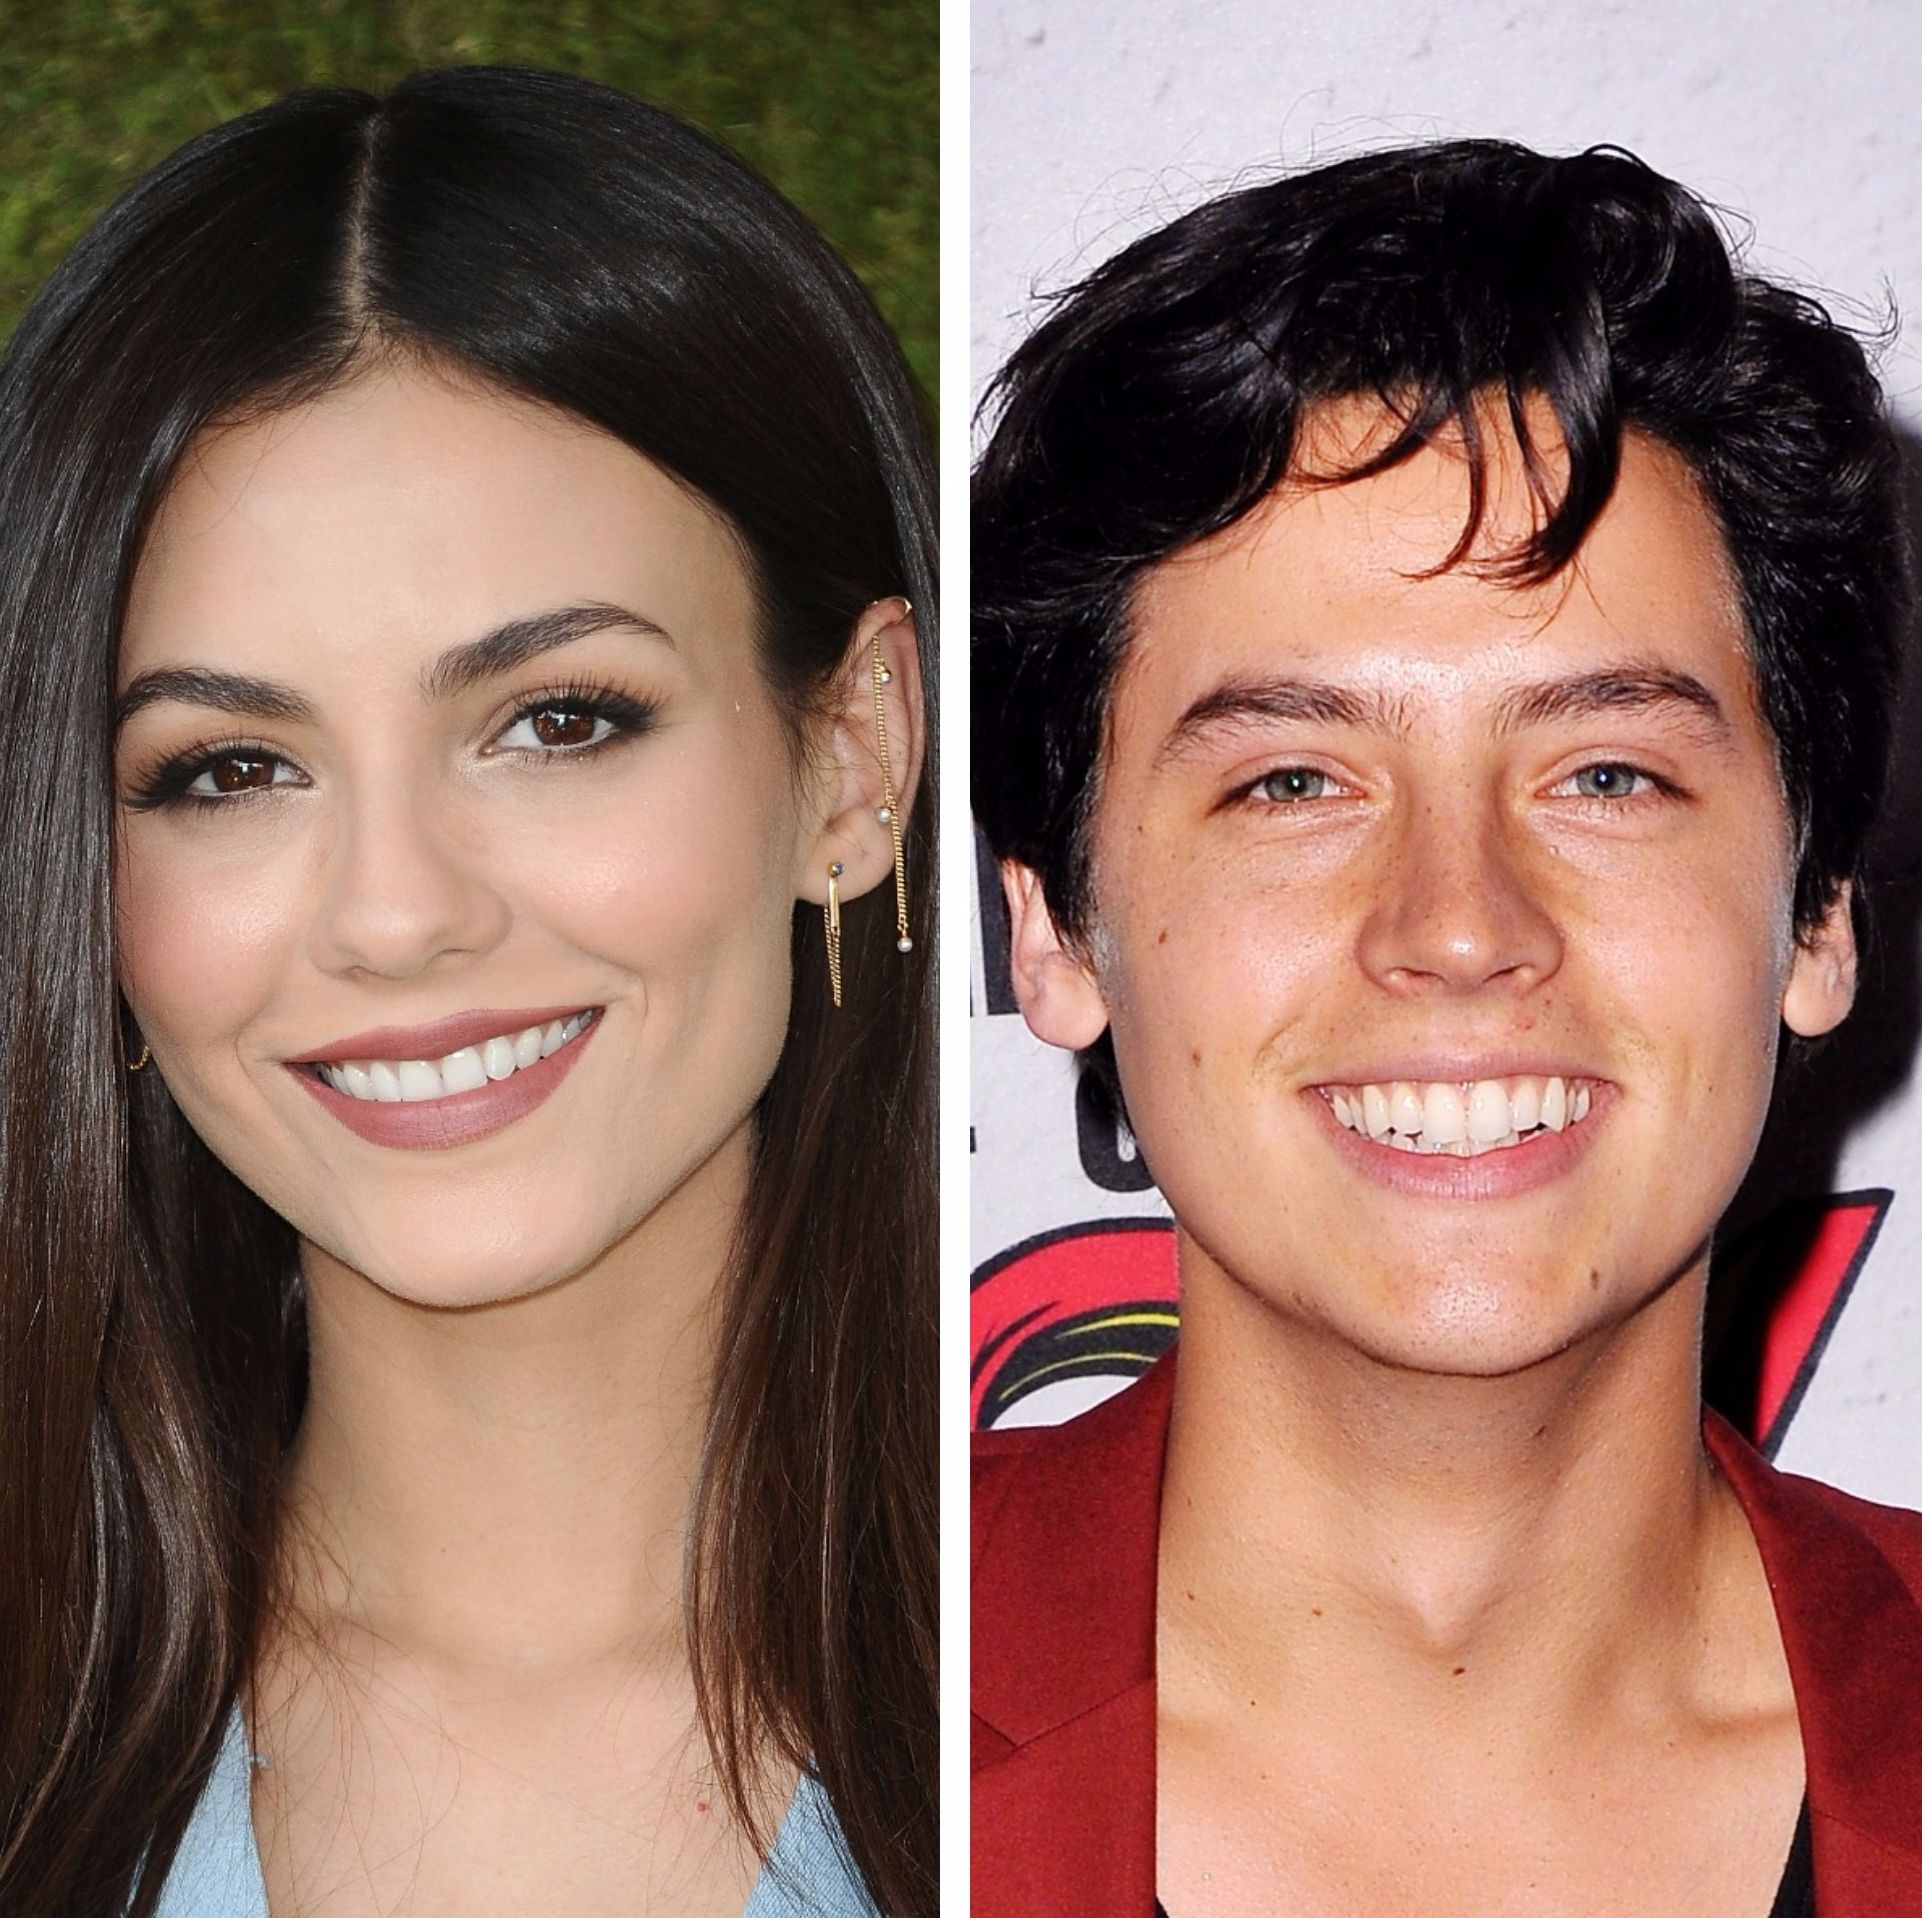 victoria justice dating wdw 16062012 author: prewluosu adam sandberg dating andy samberg - wdw - wdw = who's dating whom  traccelbi victoria justice see thru victoria justice.